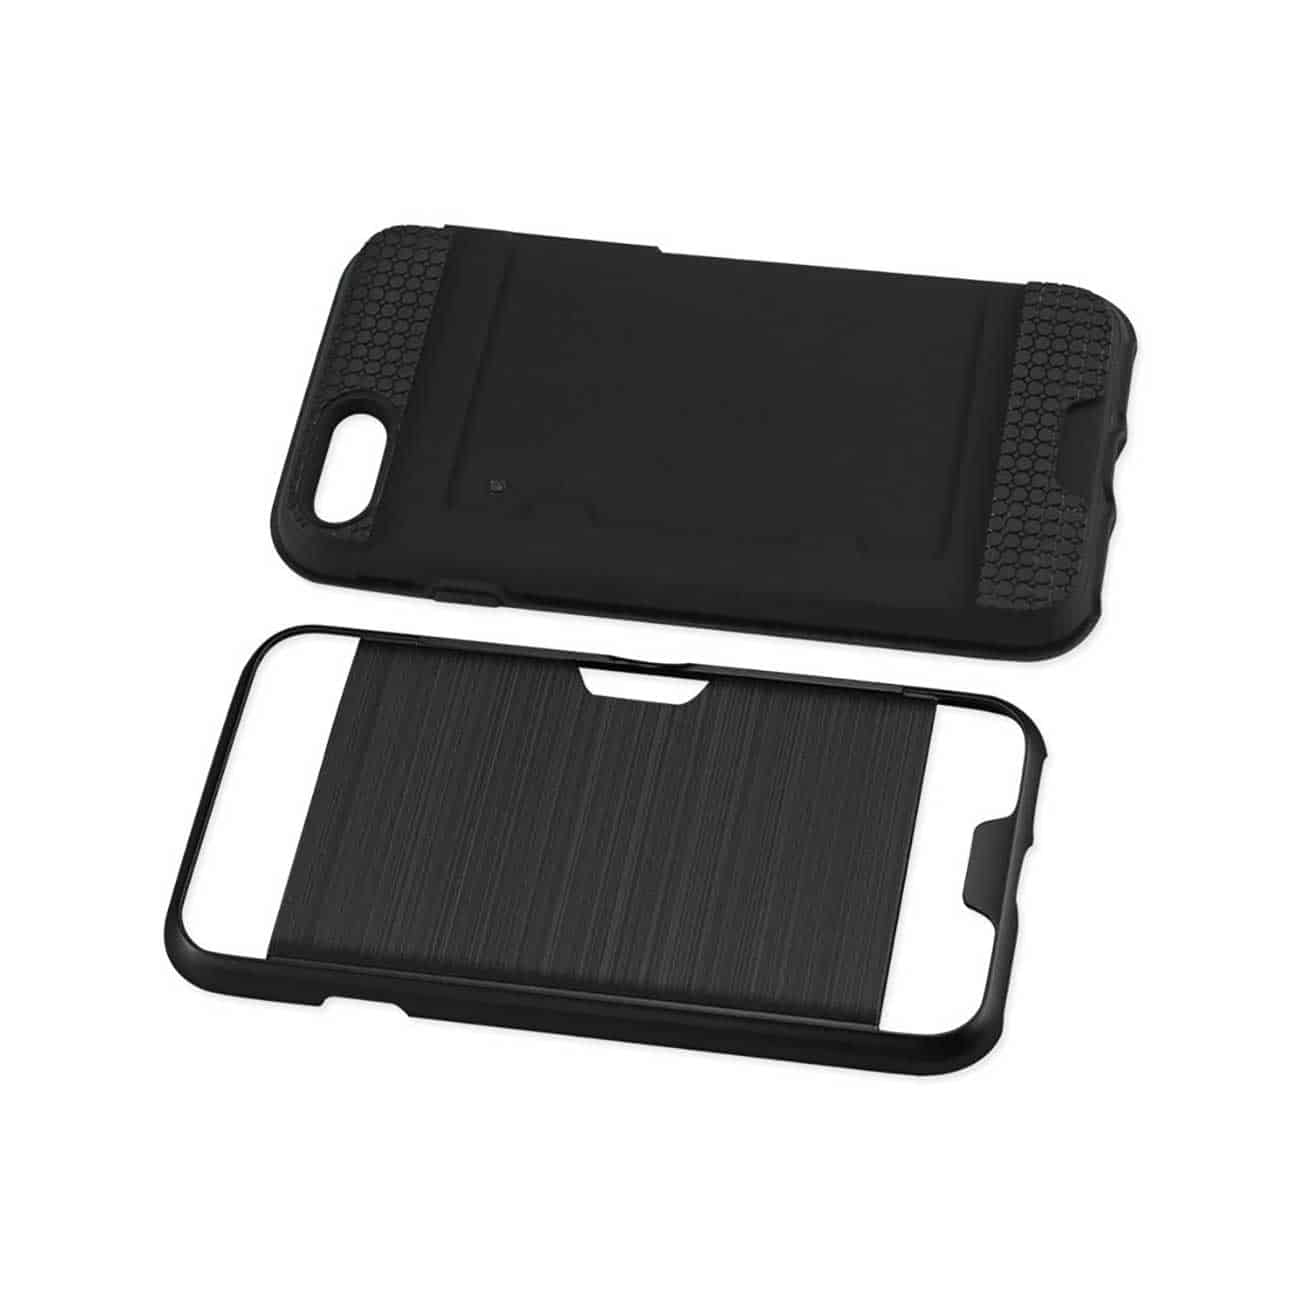 iPhone 8/ 7 Slim Armor Hybrid Case With Card Holder In Black